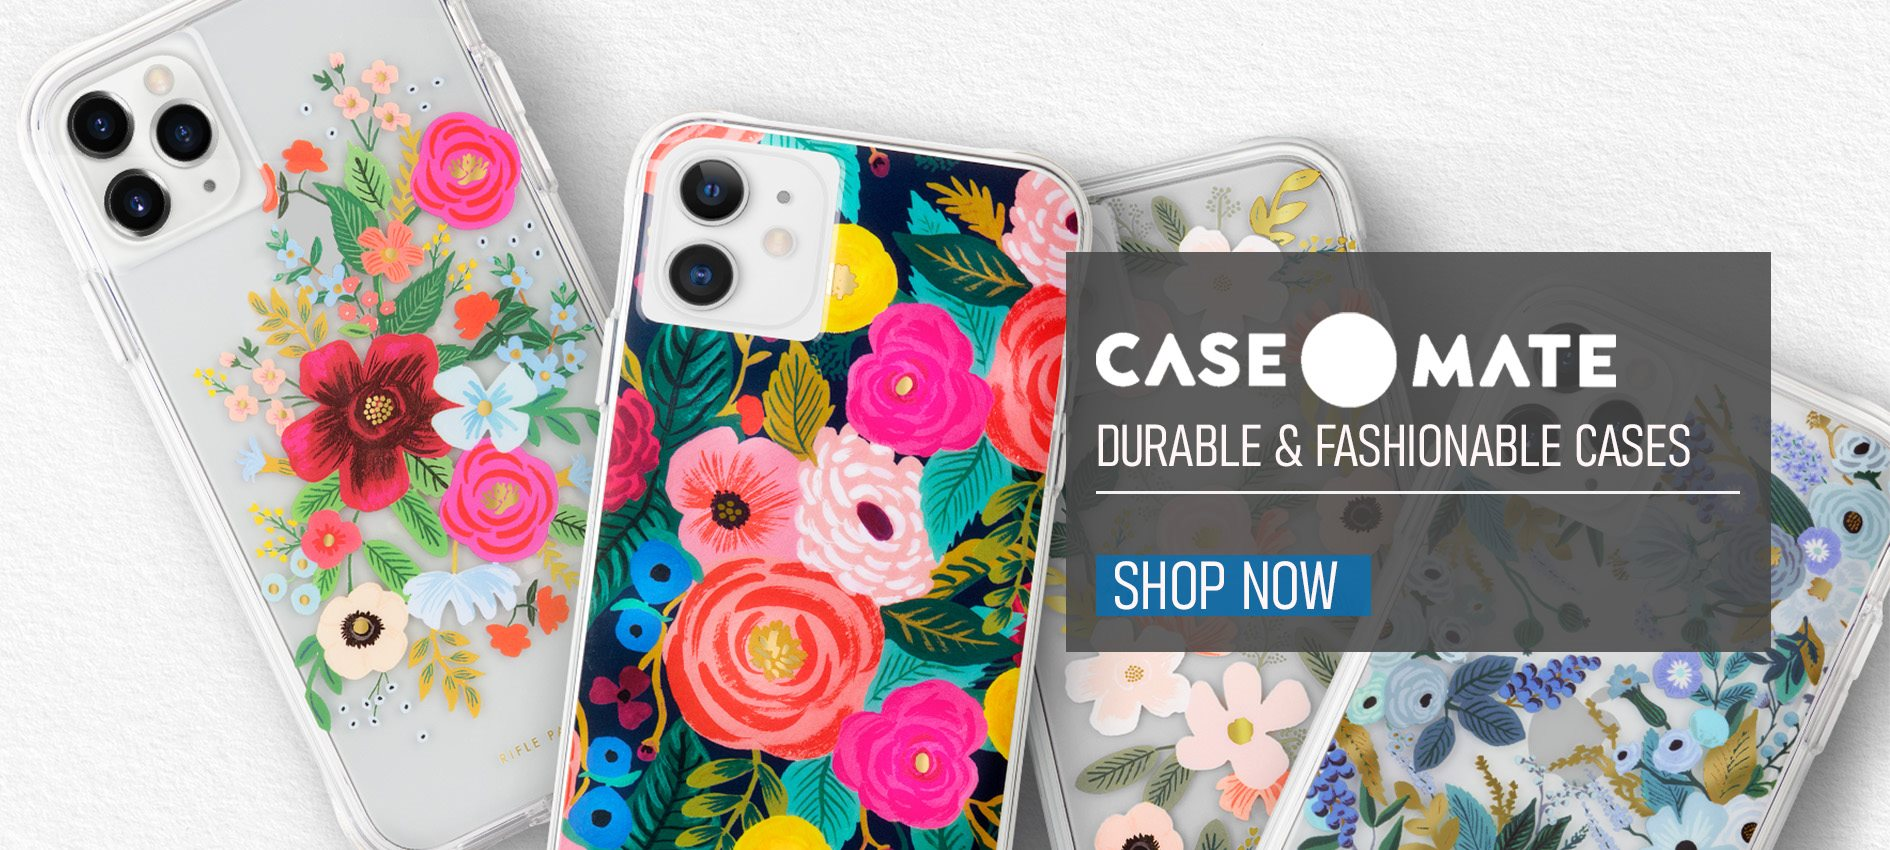 Case-Mate Rifle Paper Durable and Fashionable phone cases